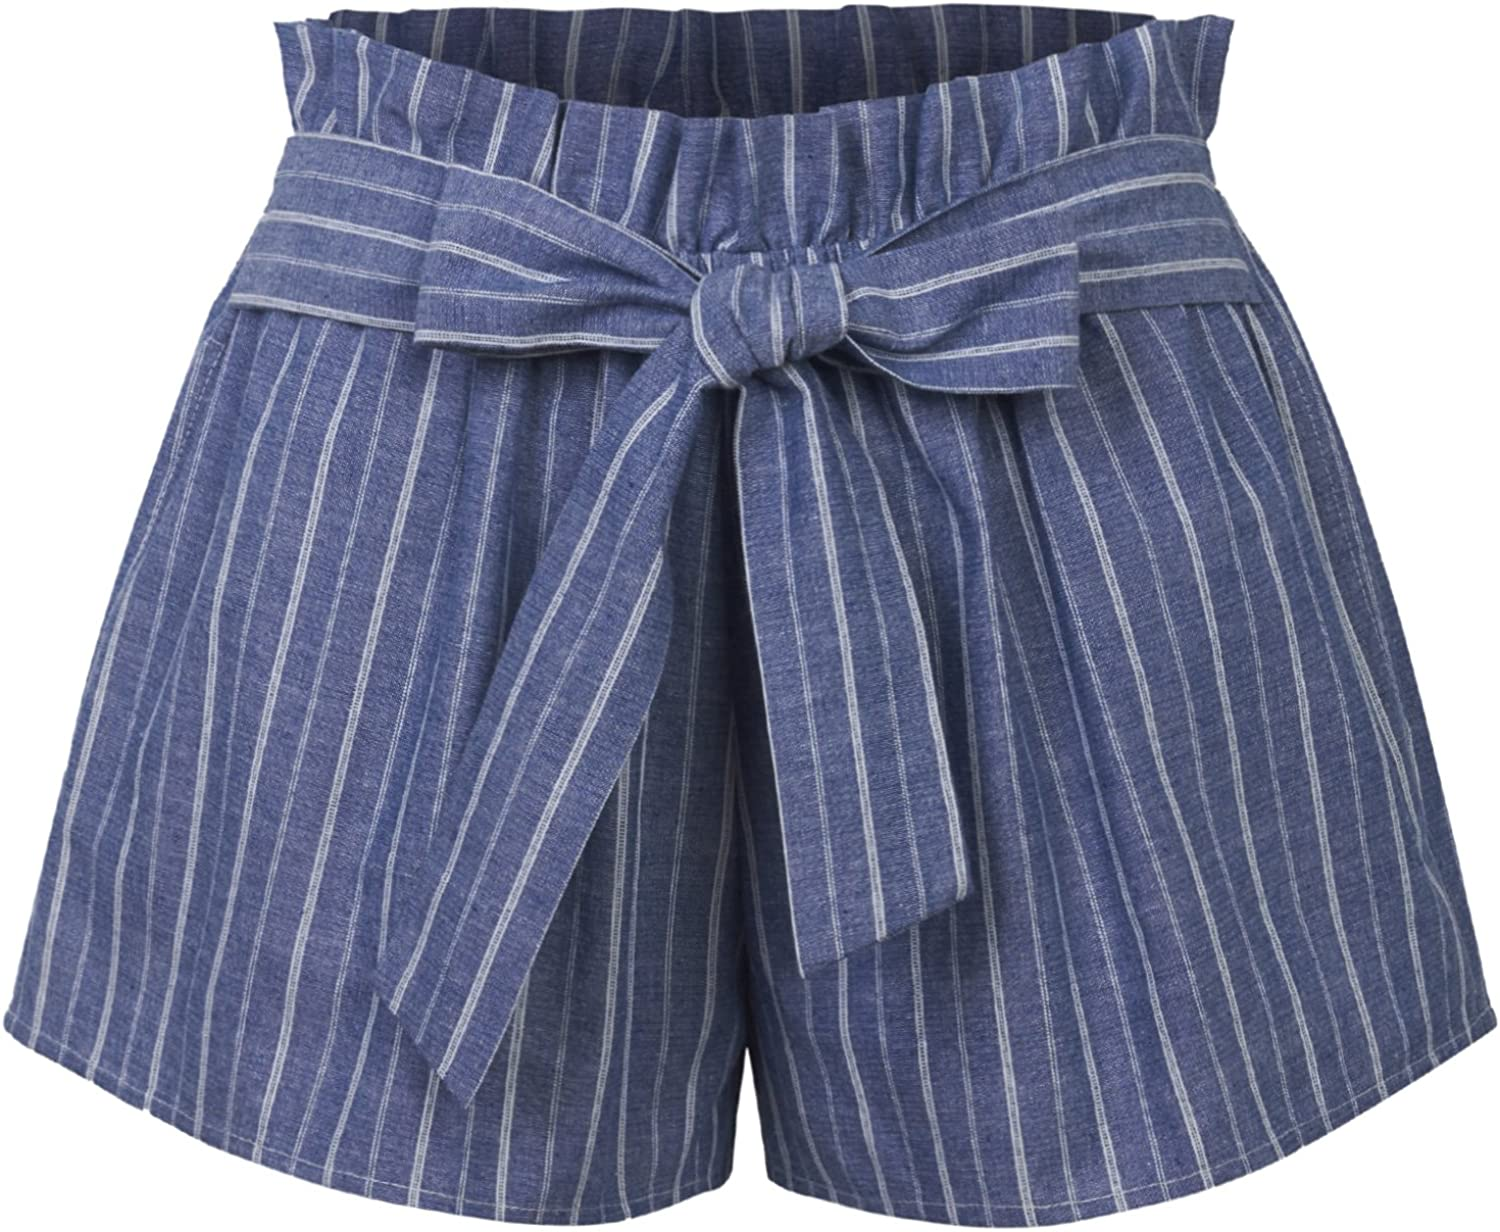 KOGMO Womens Casual Striped Summer Beach Shorts with Self Tie Bow